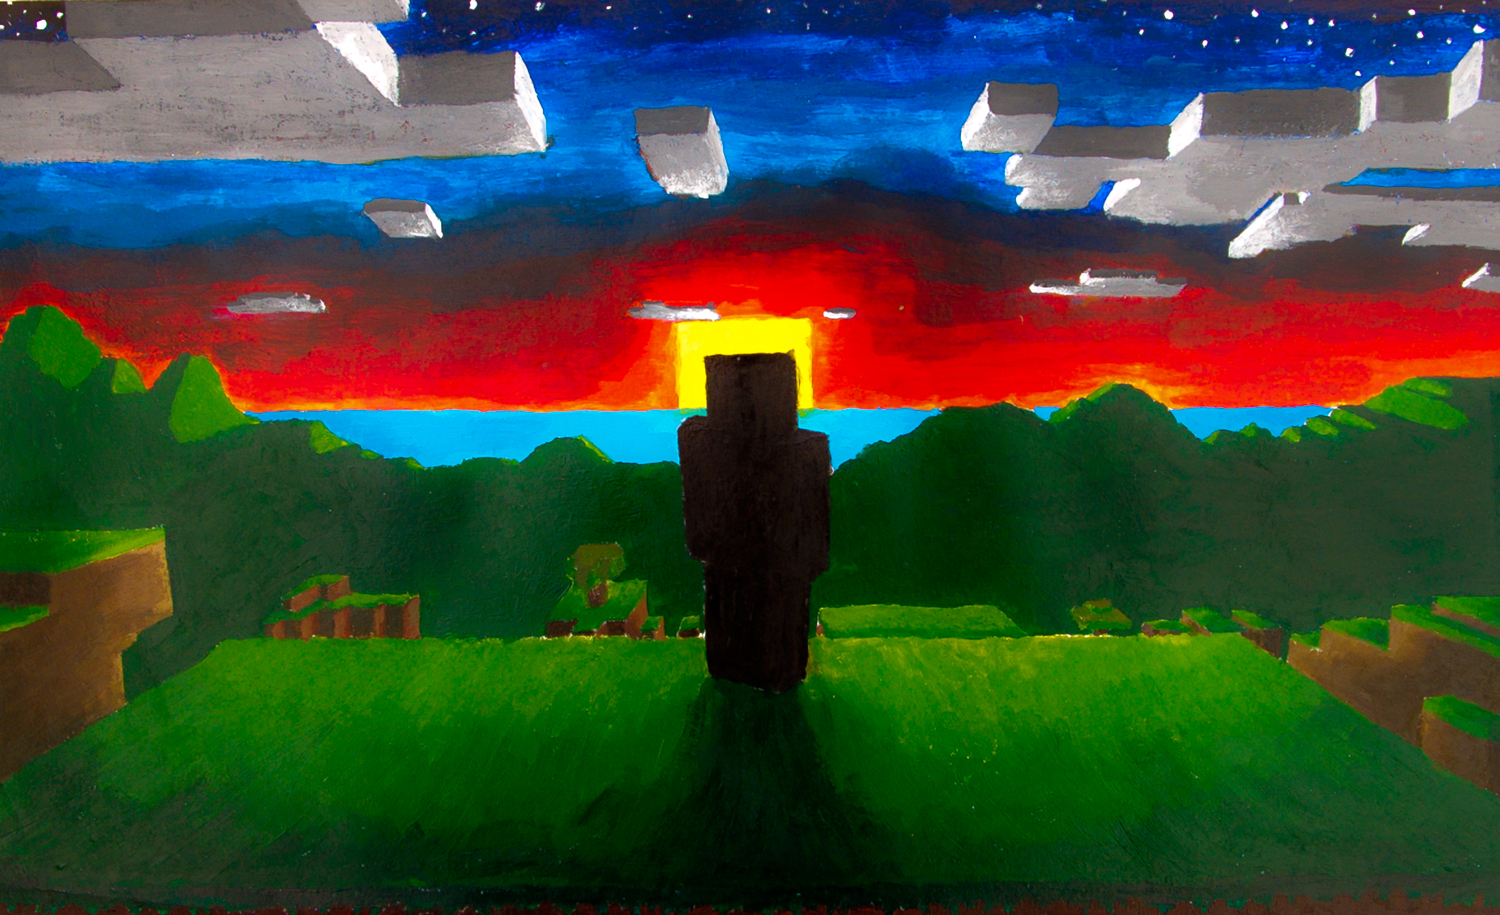 Minecraft at Sunset